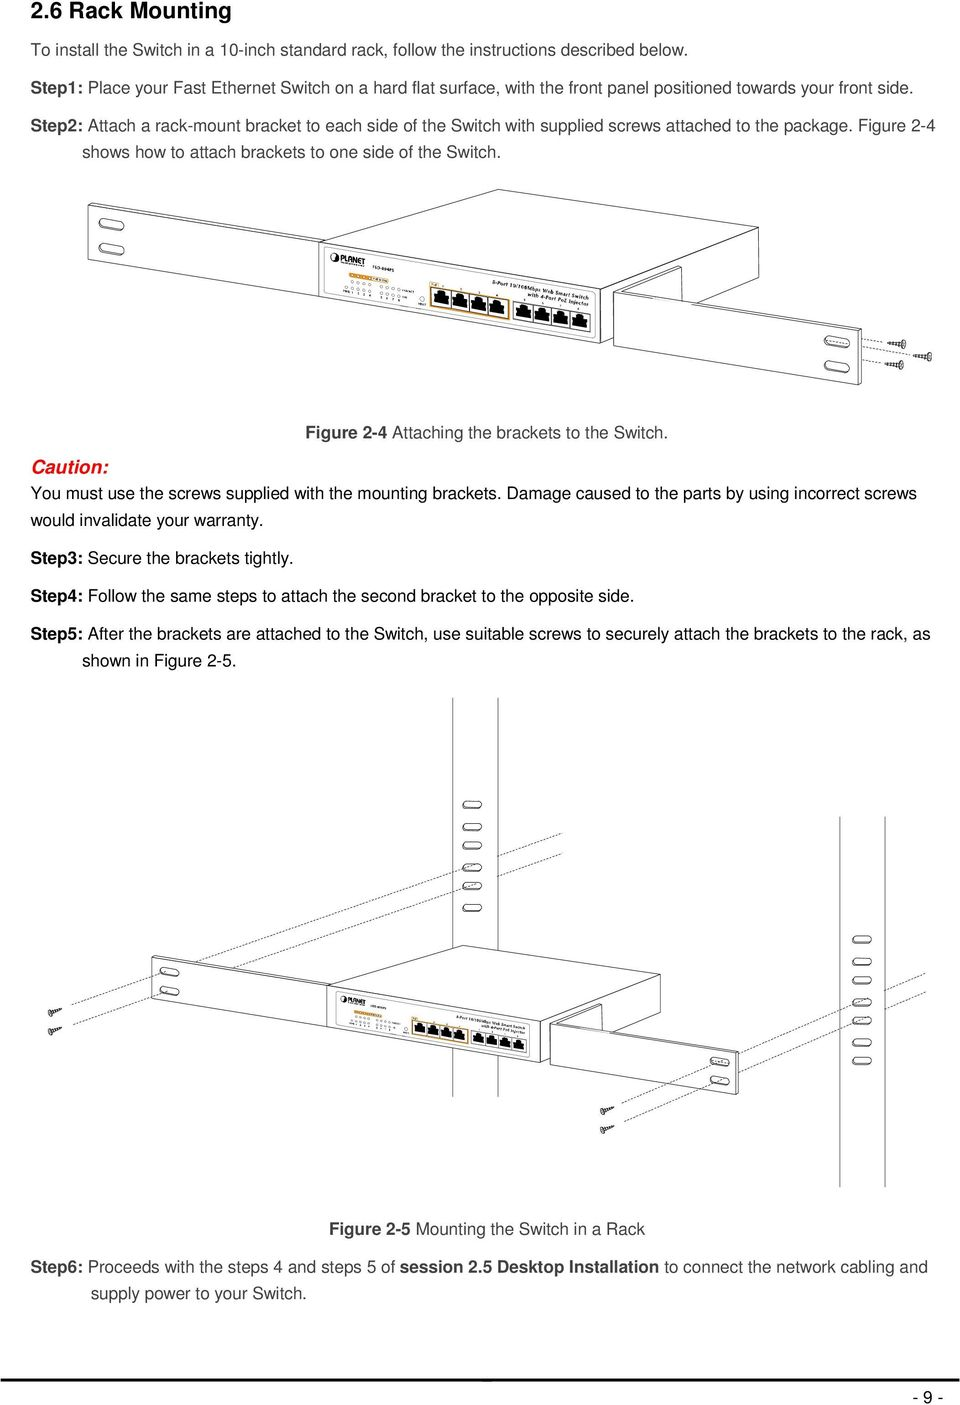 Step2: Attach a rack-mount bracket to each side of the Switch with supplied screws attached to the package. Figure 2-4 shows how to attach brackets to one side of the Switch.